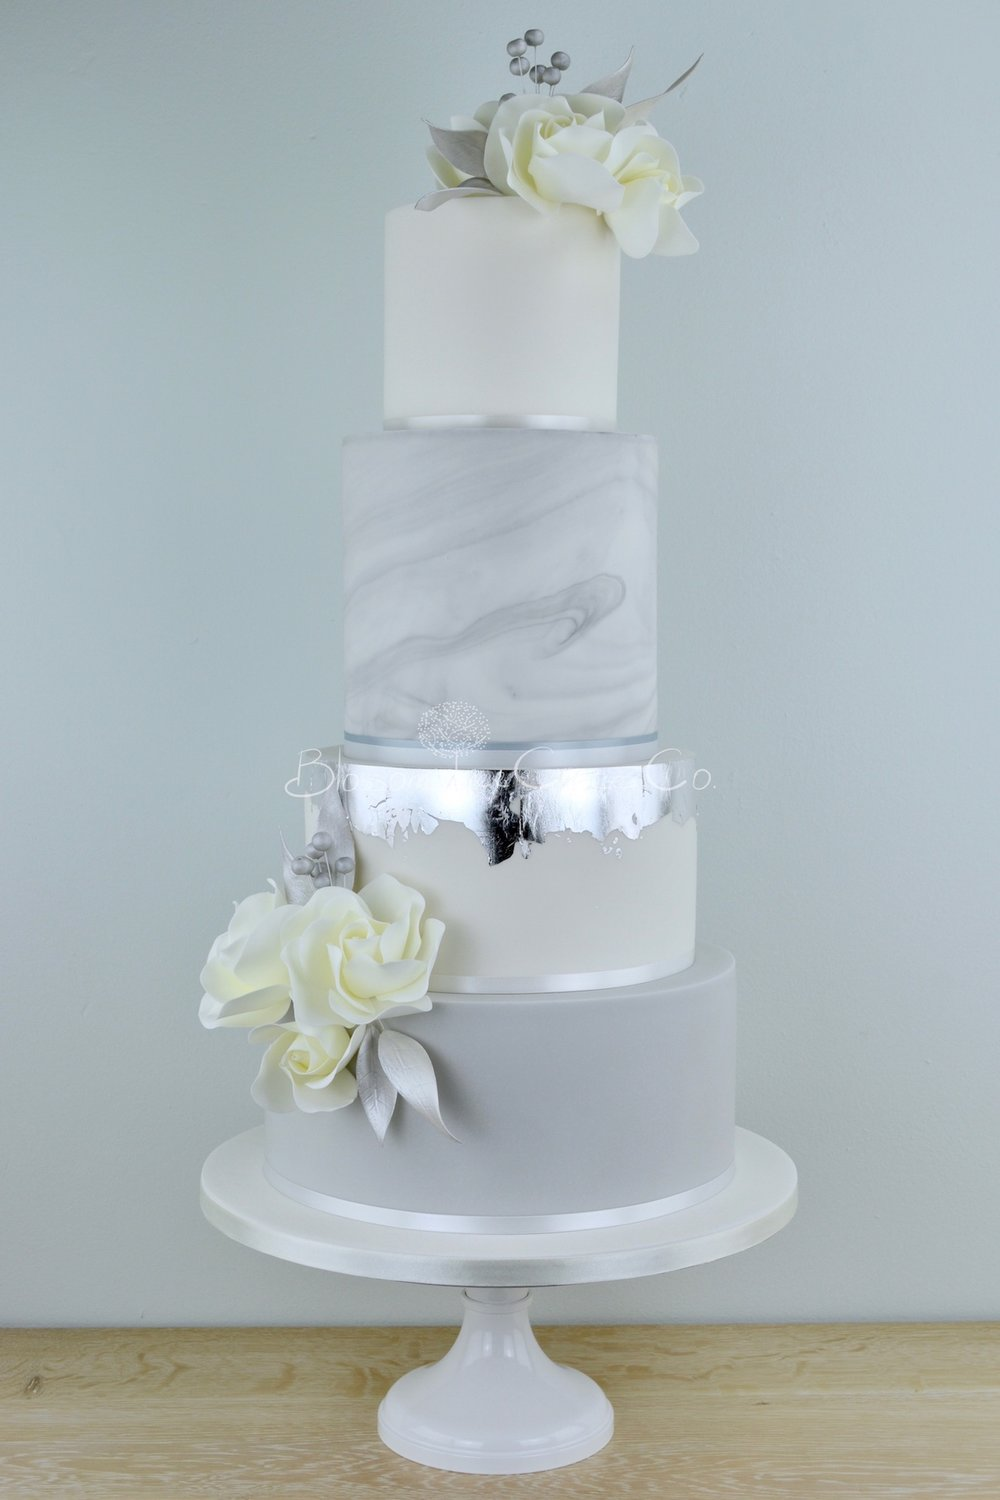 Silver Marble wedding cake by Blossom Tree Cake Company Harrogate North Yorkshire